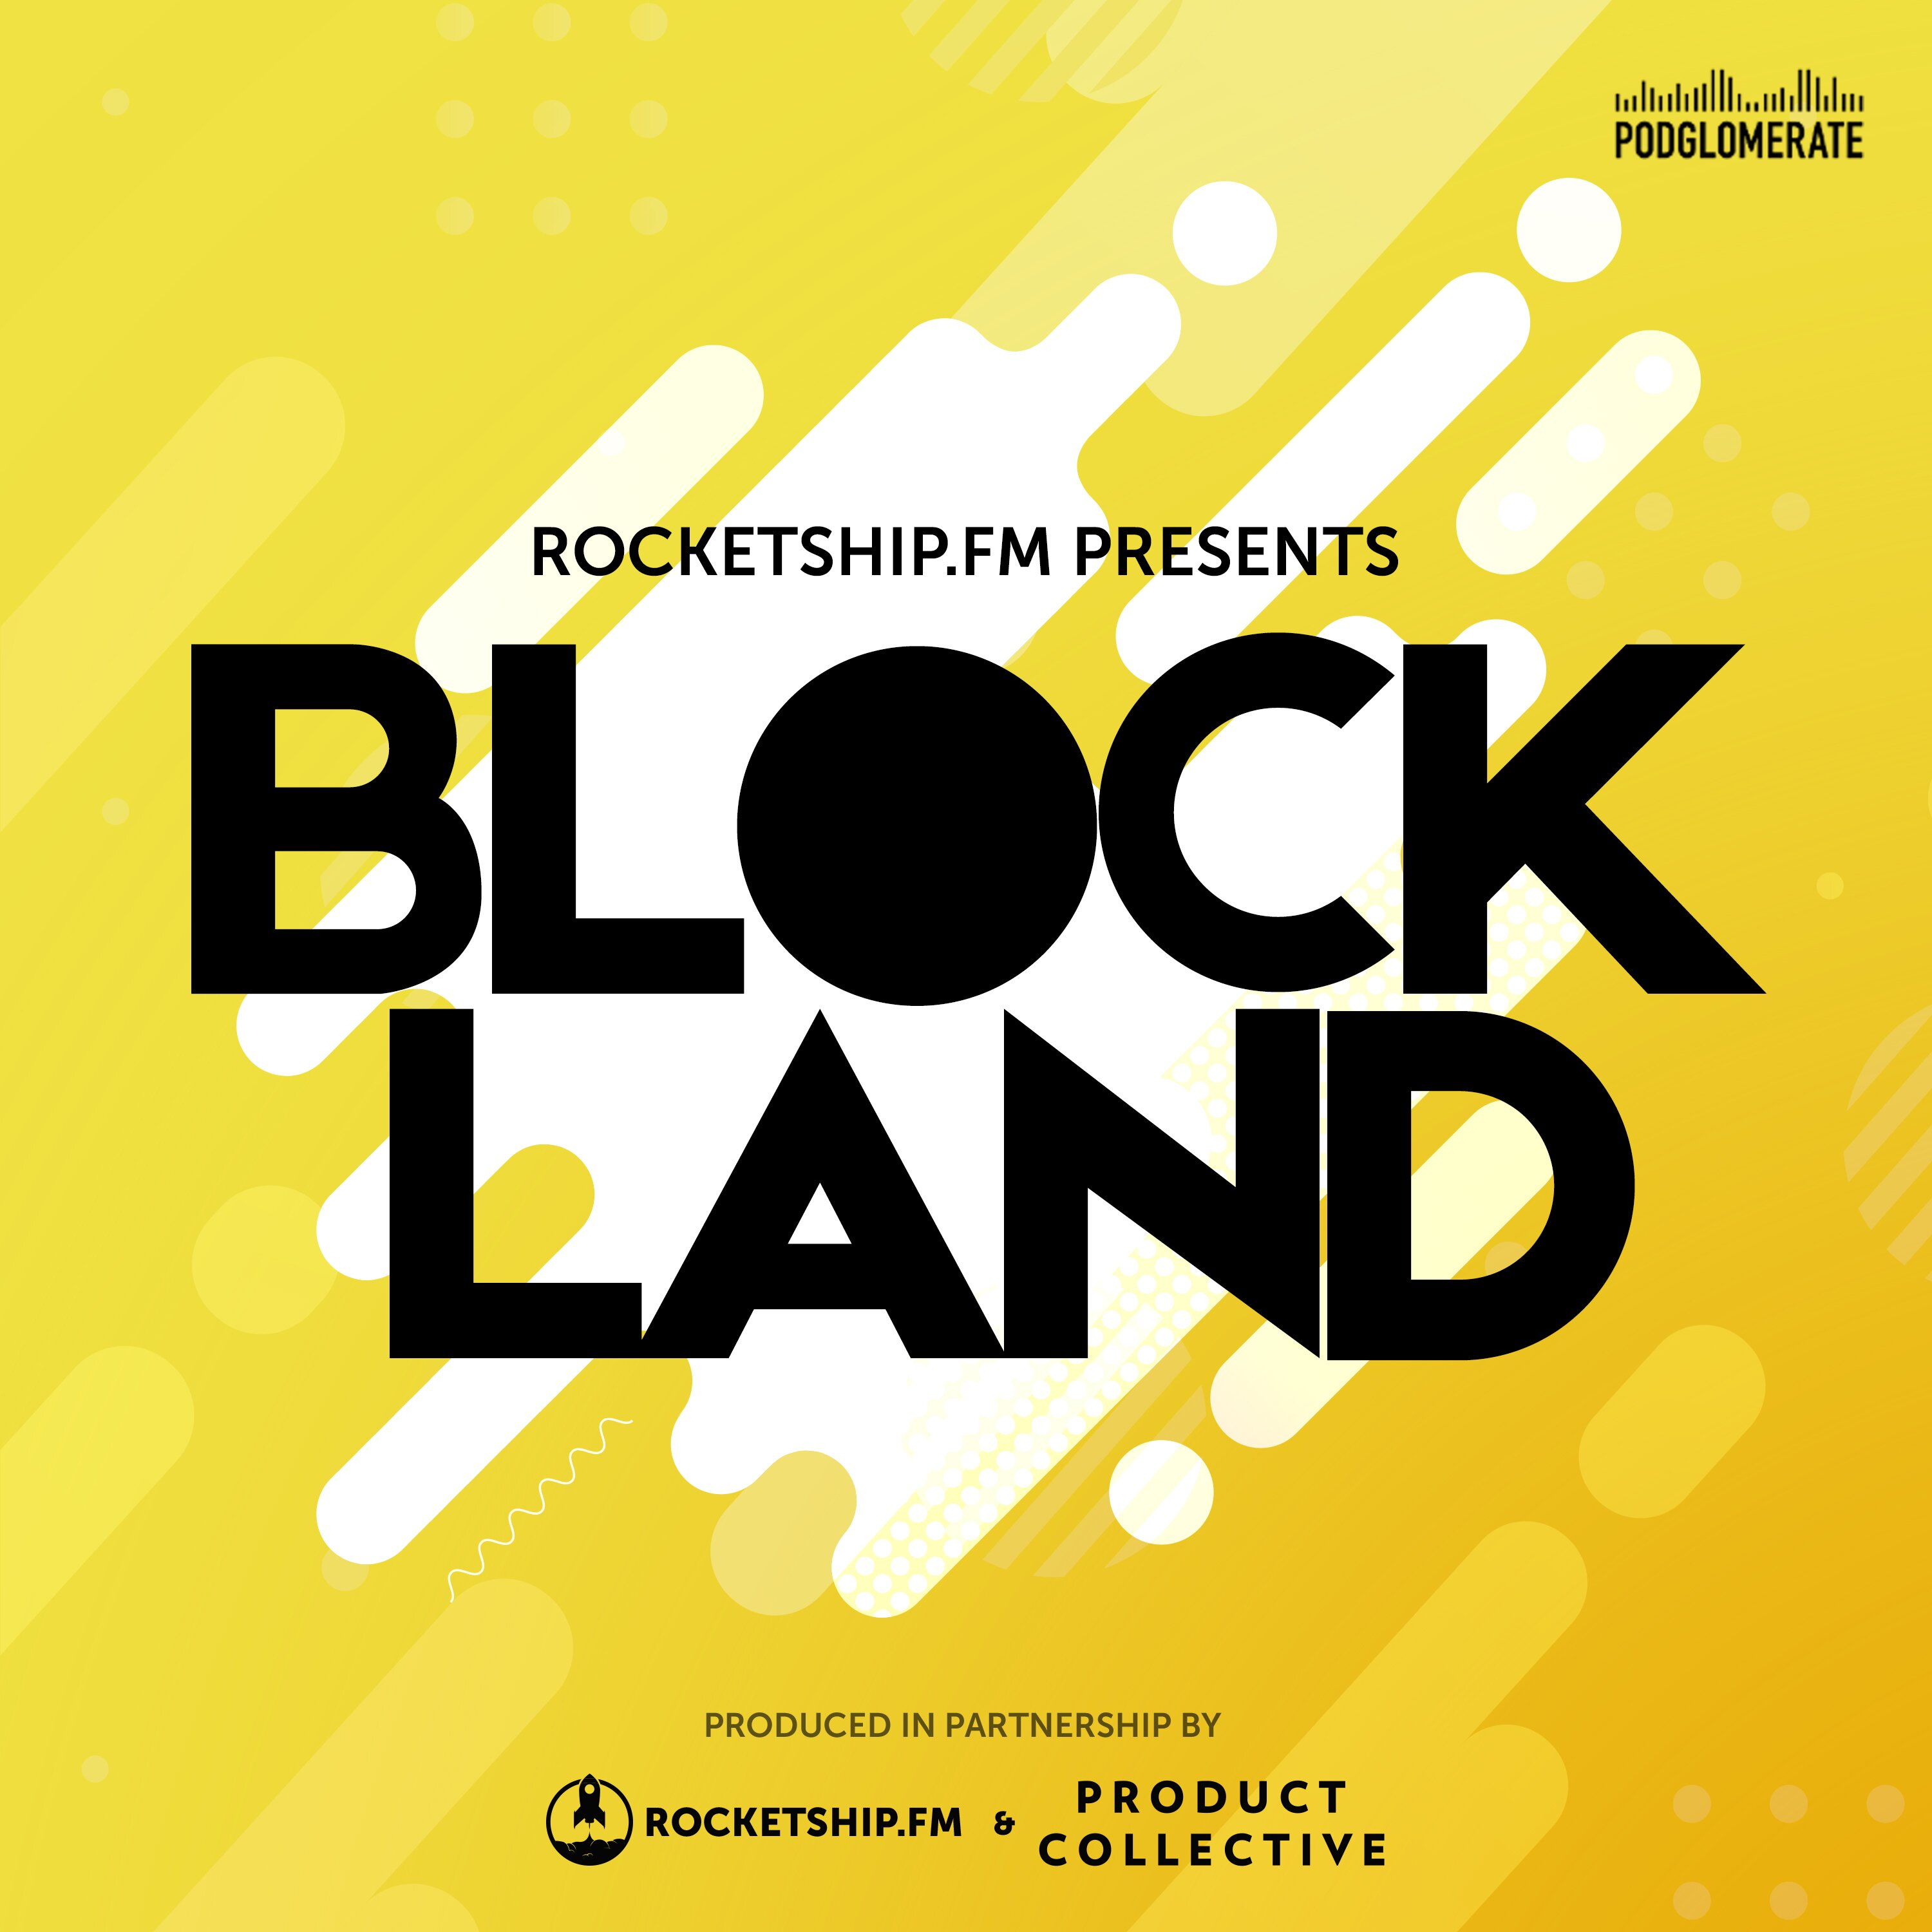 Blockland: Blockchaining Cleveland, Ohio